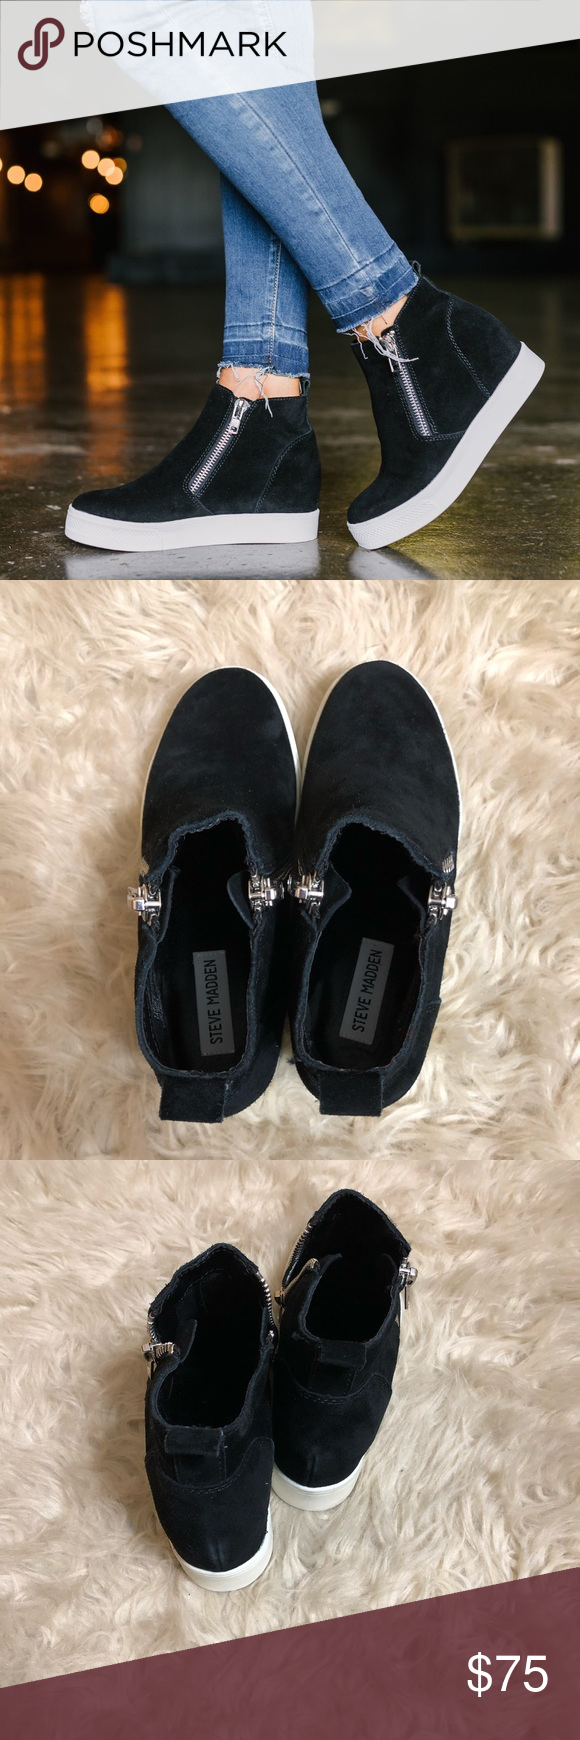 226e6614ad9 BRAND NEW Steve Madden Black Wedgies These are a pair of brand new Steve  Madden Black